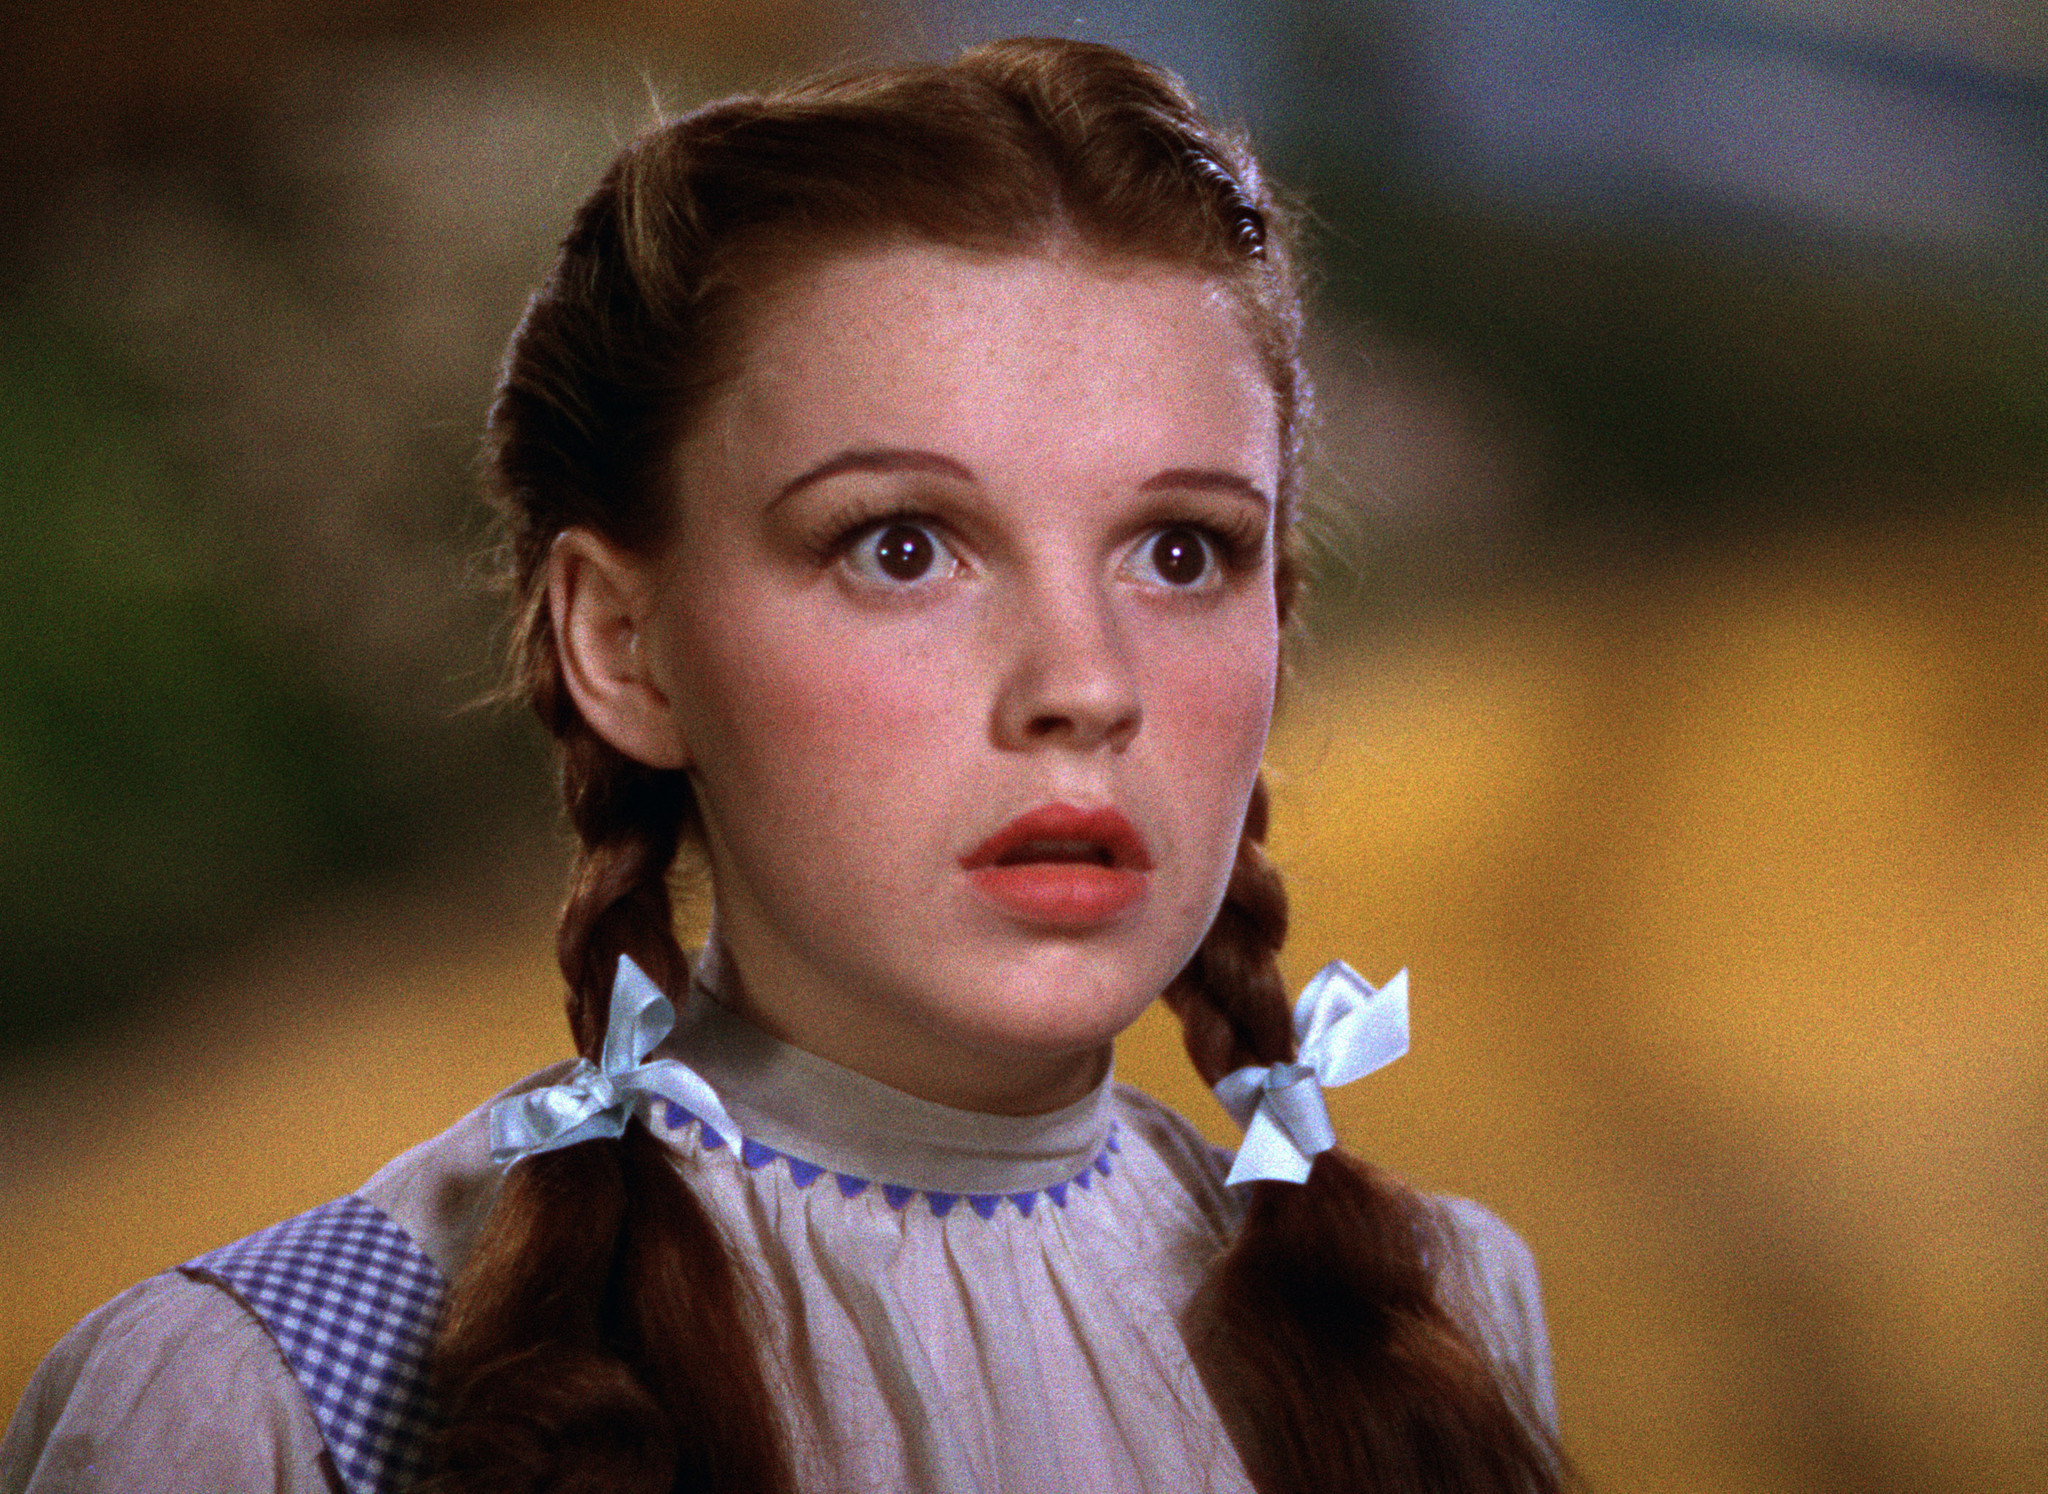 la-et-mn-judy-garland-wizard-of-oz-tribute-oscars-liza-minnelli-20140224